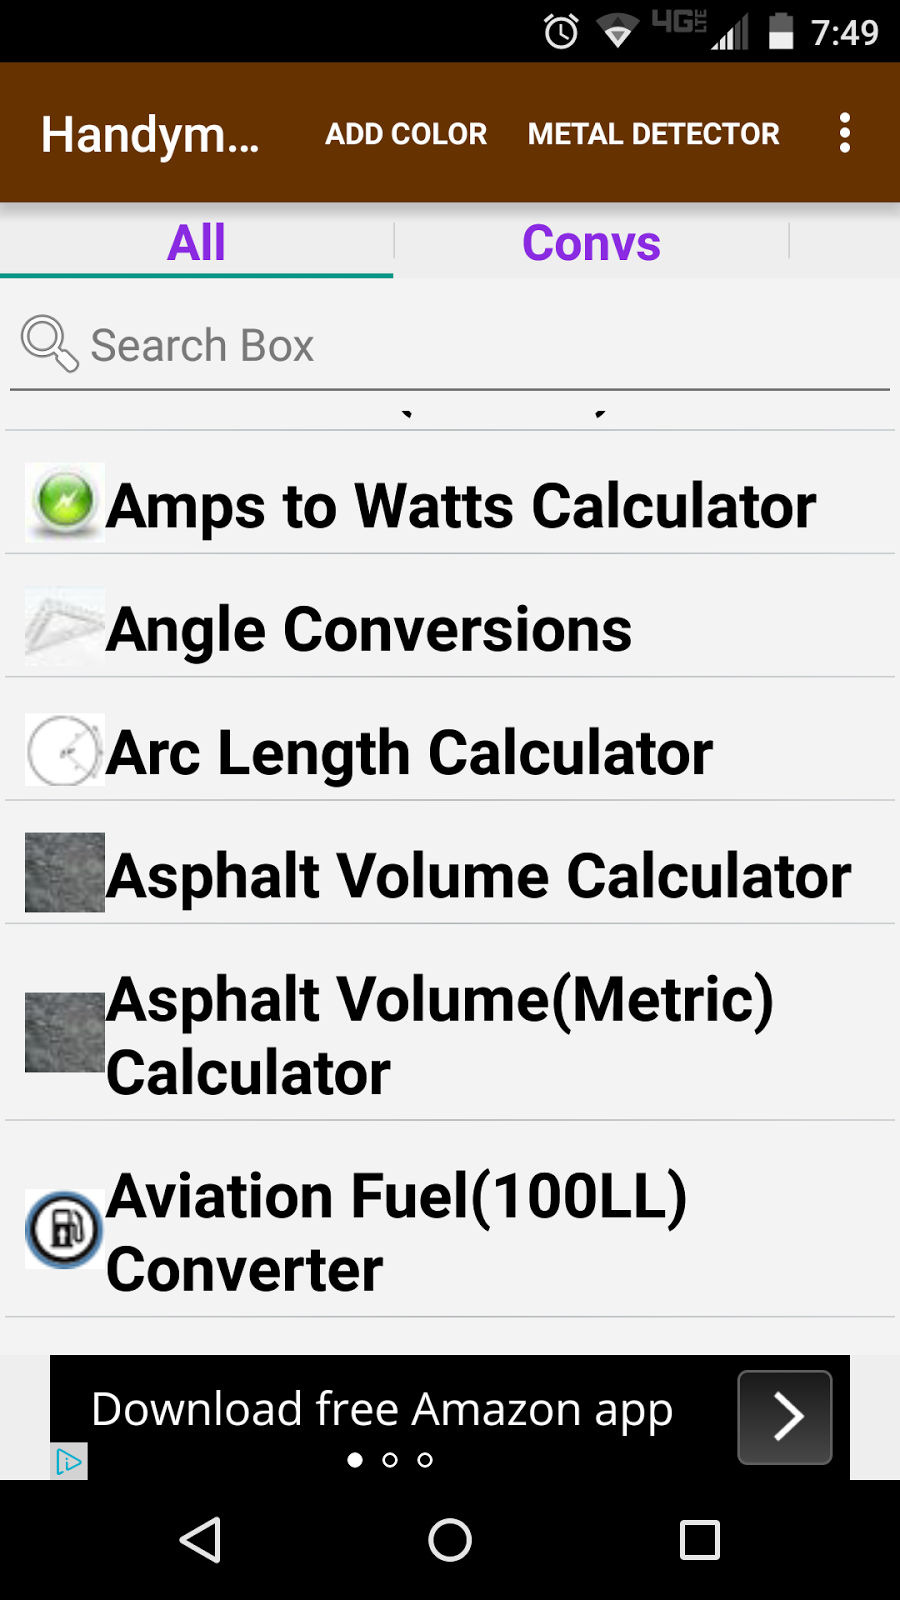 Eddie's Math and Calculator Blog: Handyman Calculator Android App Review